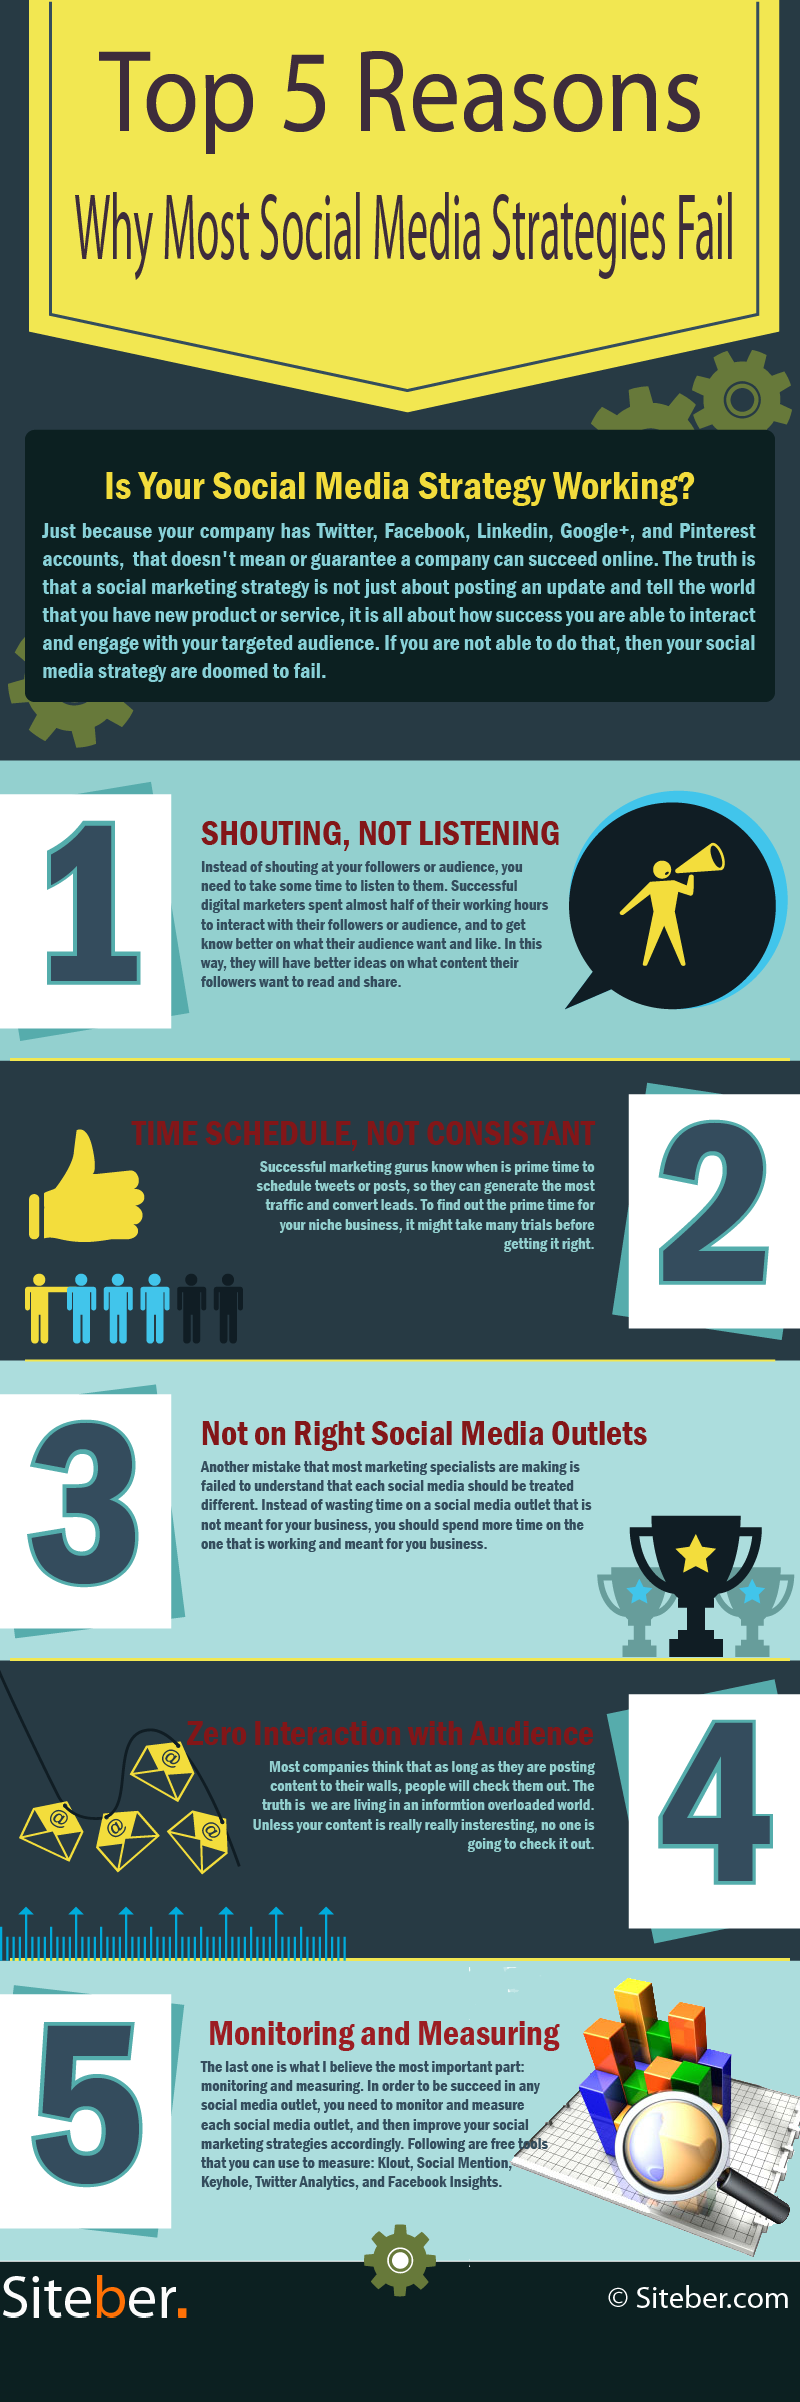 Top Reasons Why Most Social Media Strategies Fail